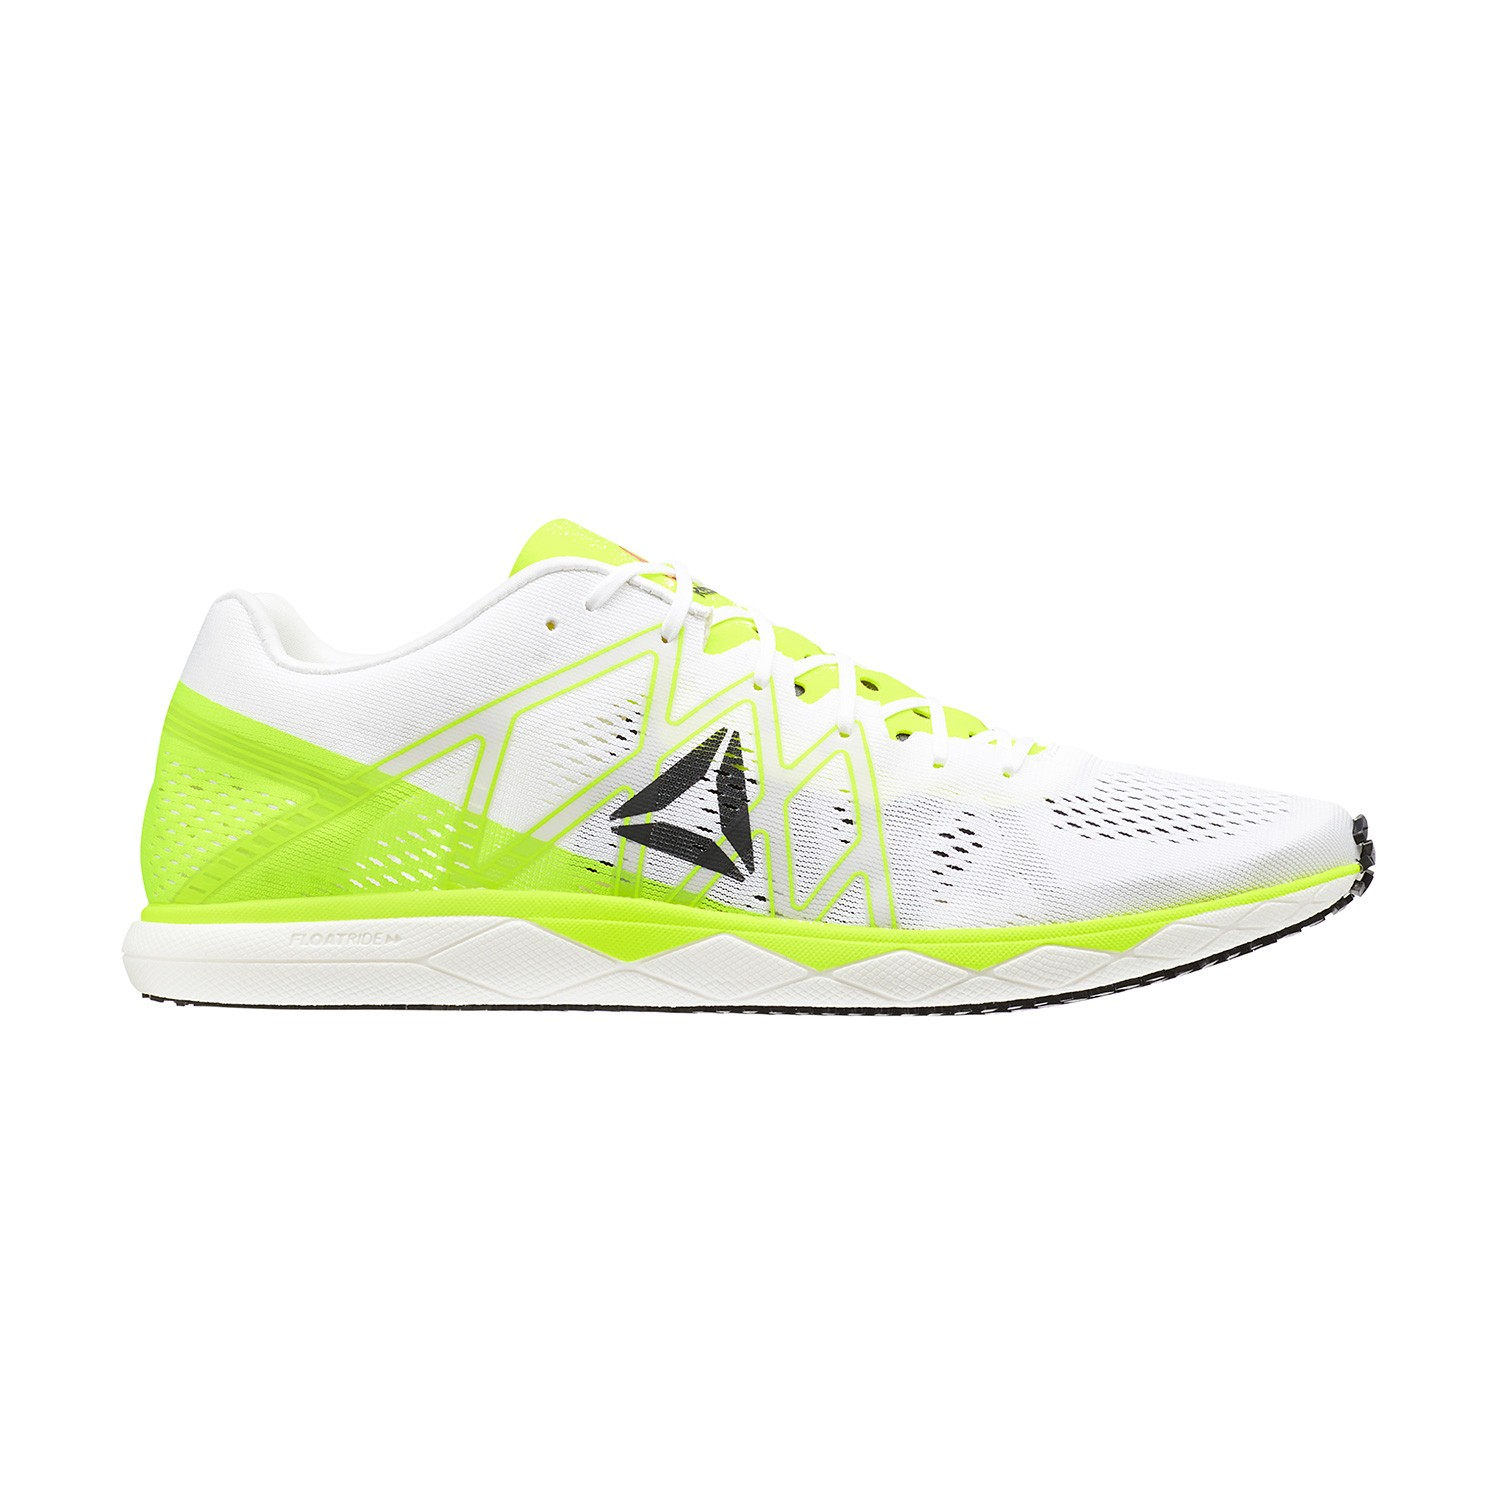 Reebok Unisex Floatride Run Fast Pro Running Shoe